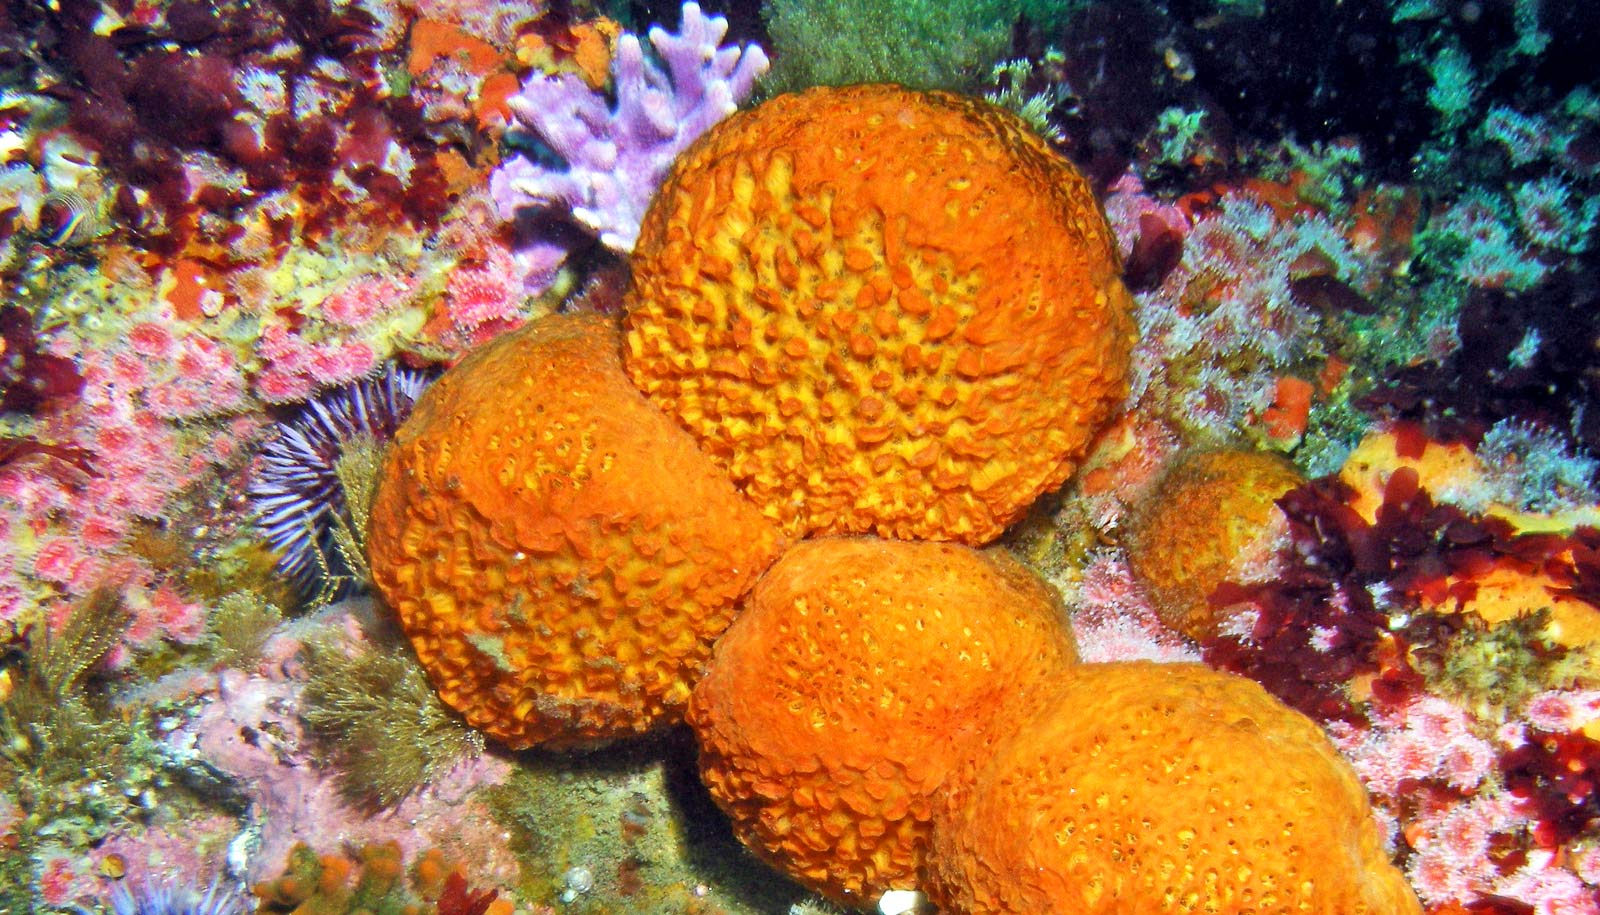 Tiny Rods In Sea Sponges Are Awesome At Not Buckling